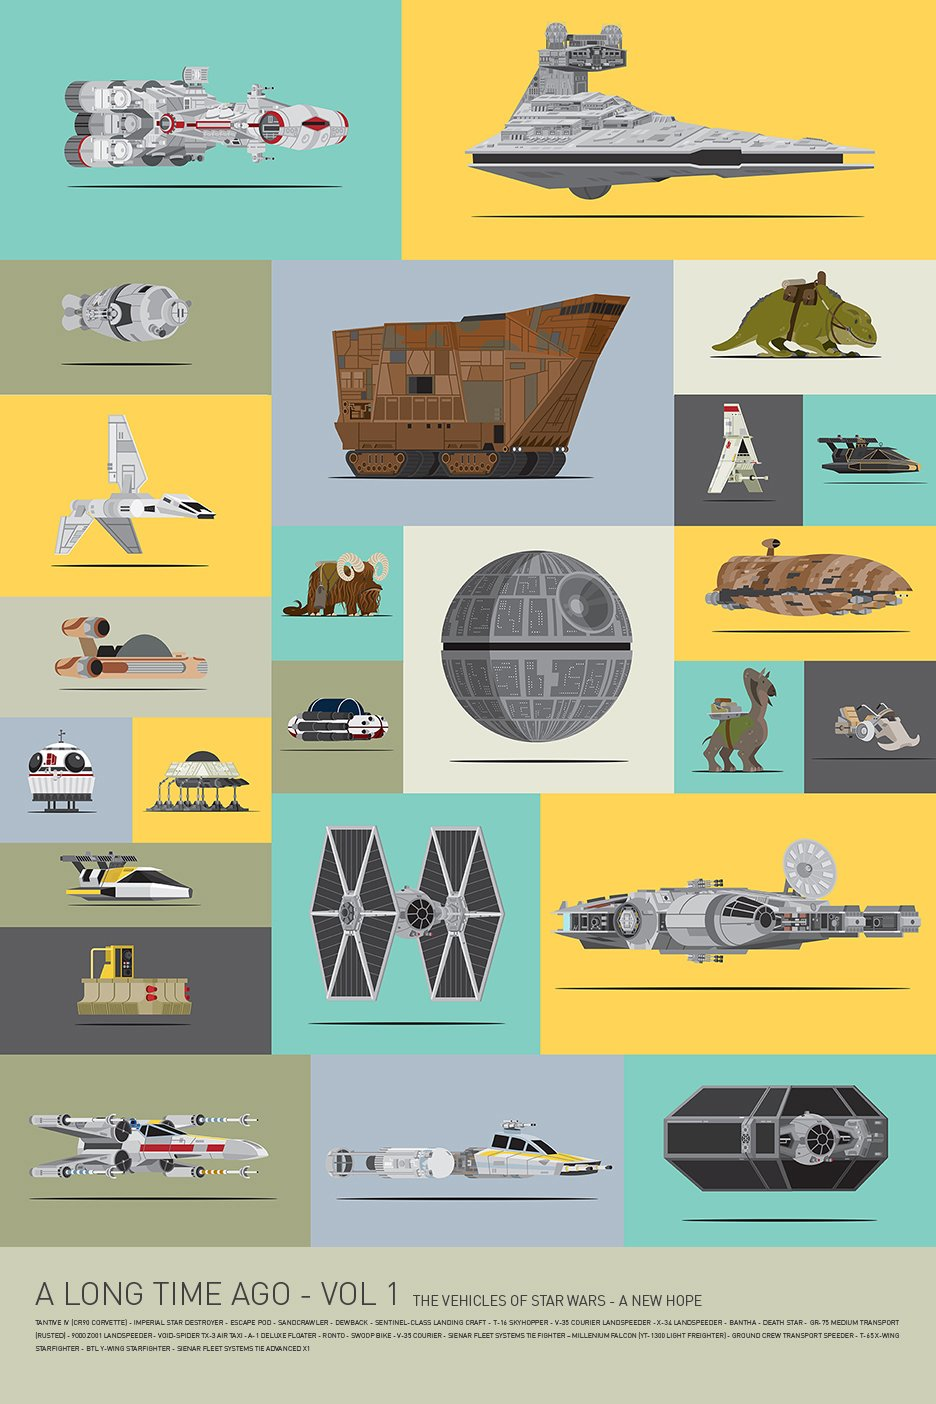 Star Wars Vehicles by Size